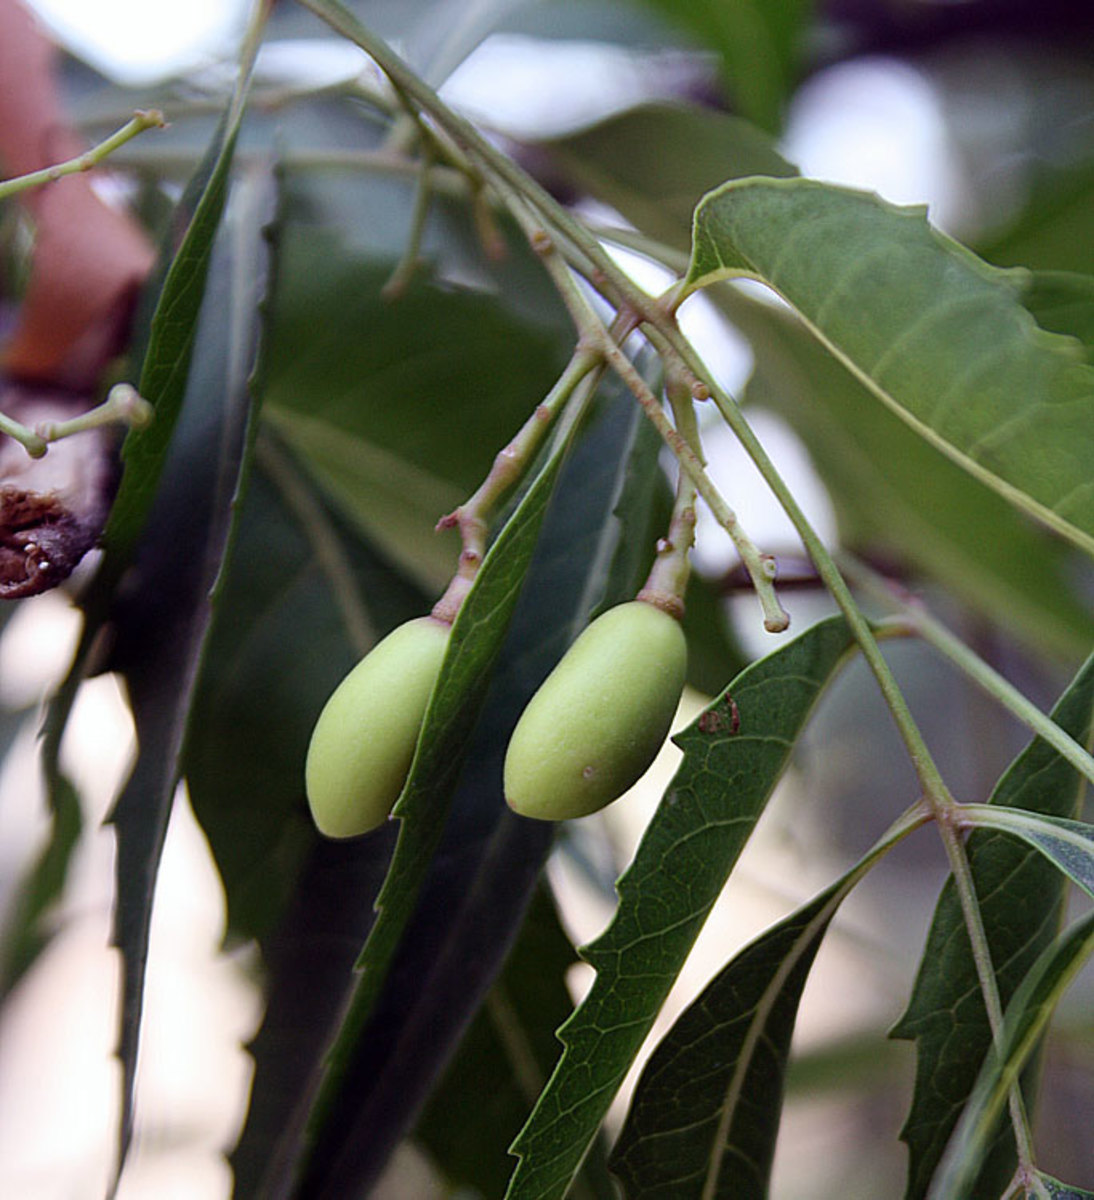 Unripe Neem Fruits